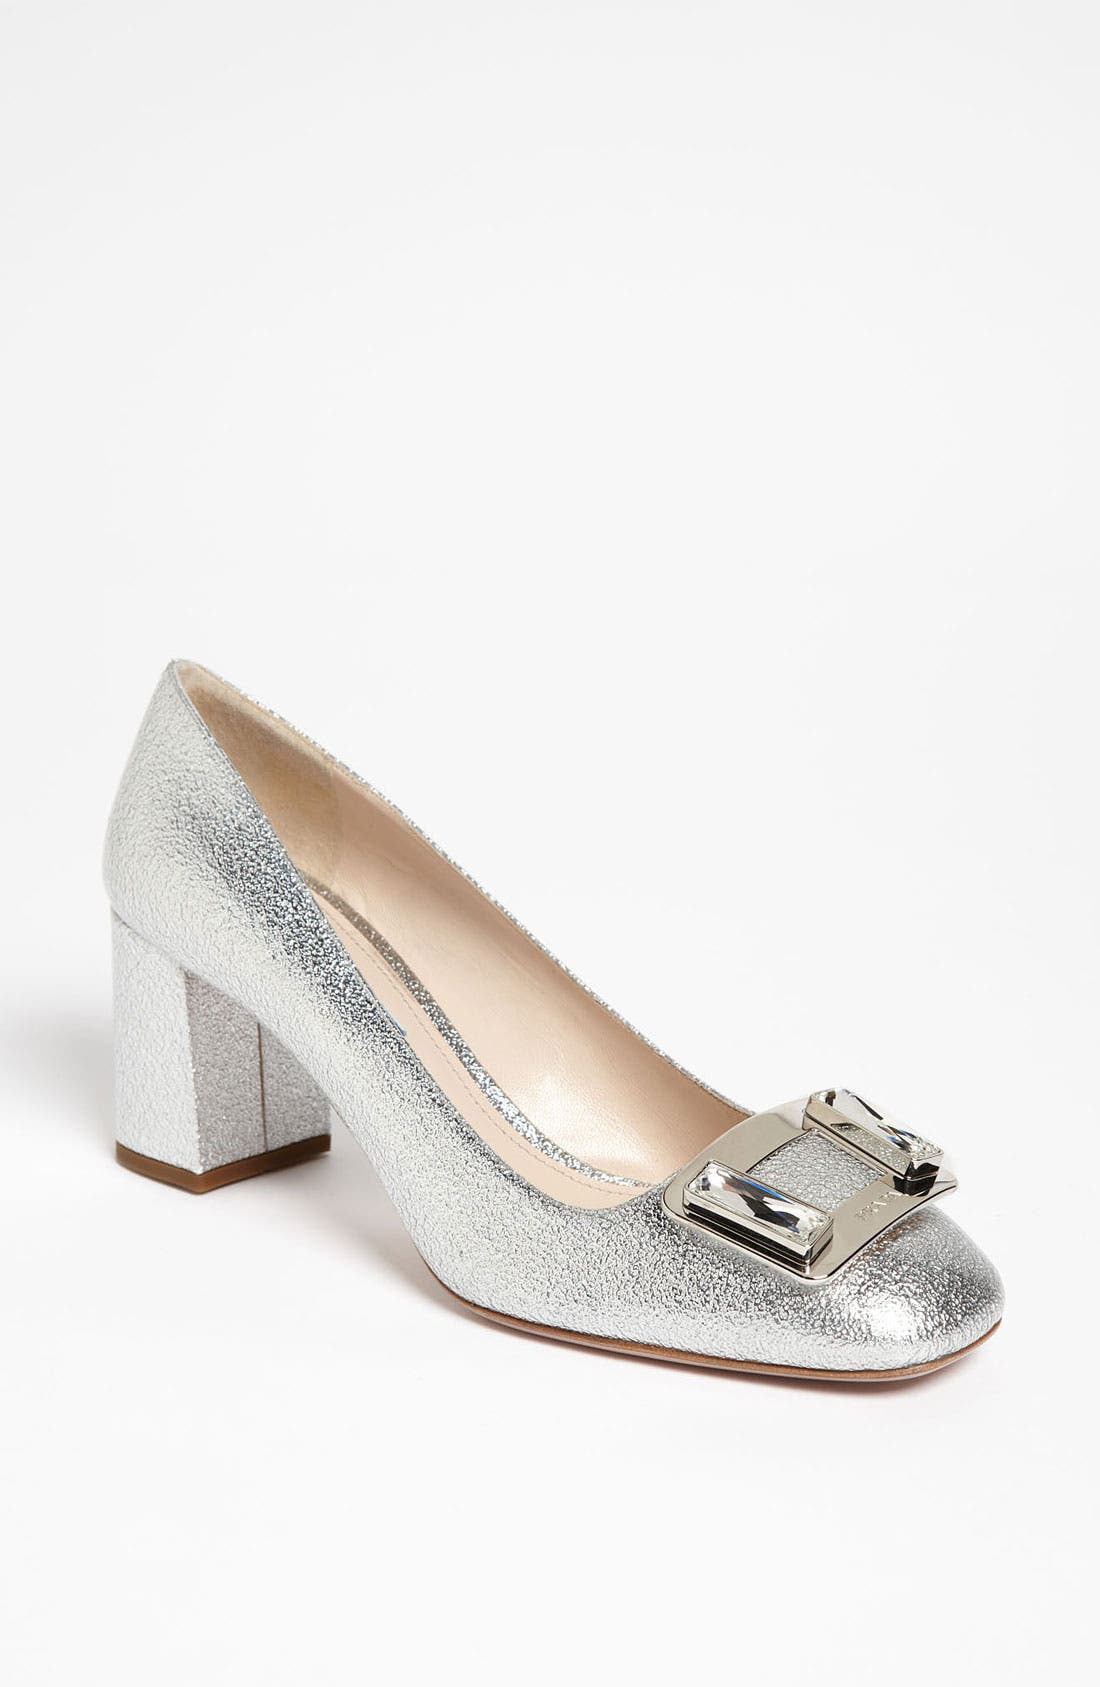 Alternate Image 1 Selected - Prada Crystal Metal Buckle Pump